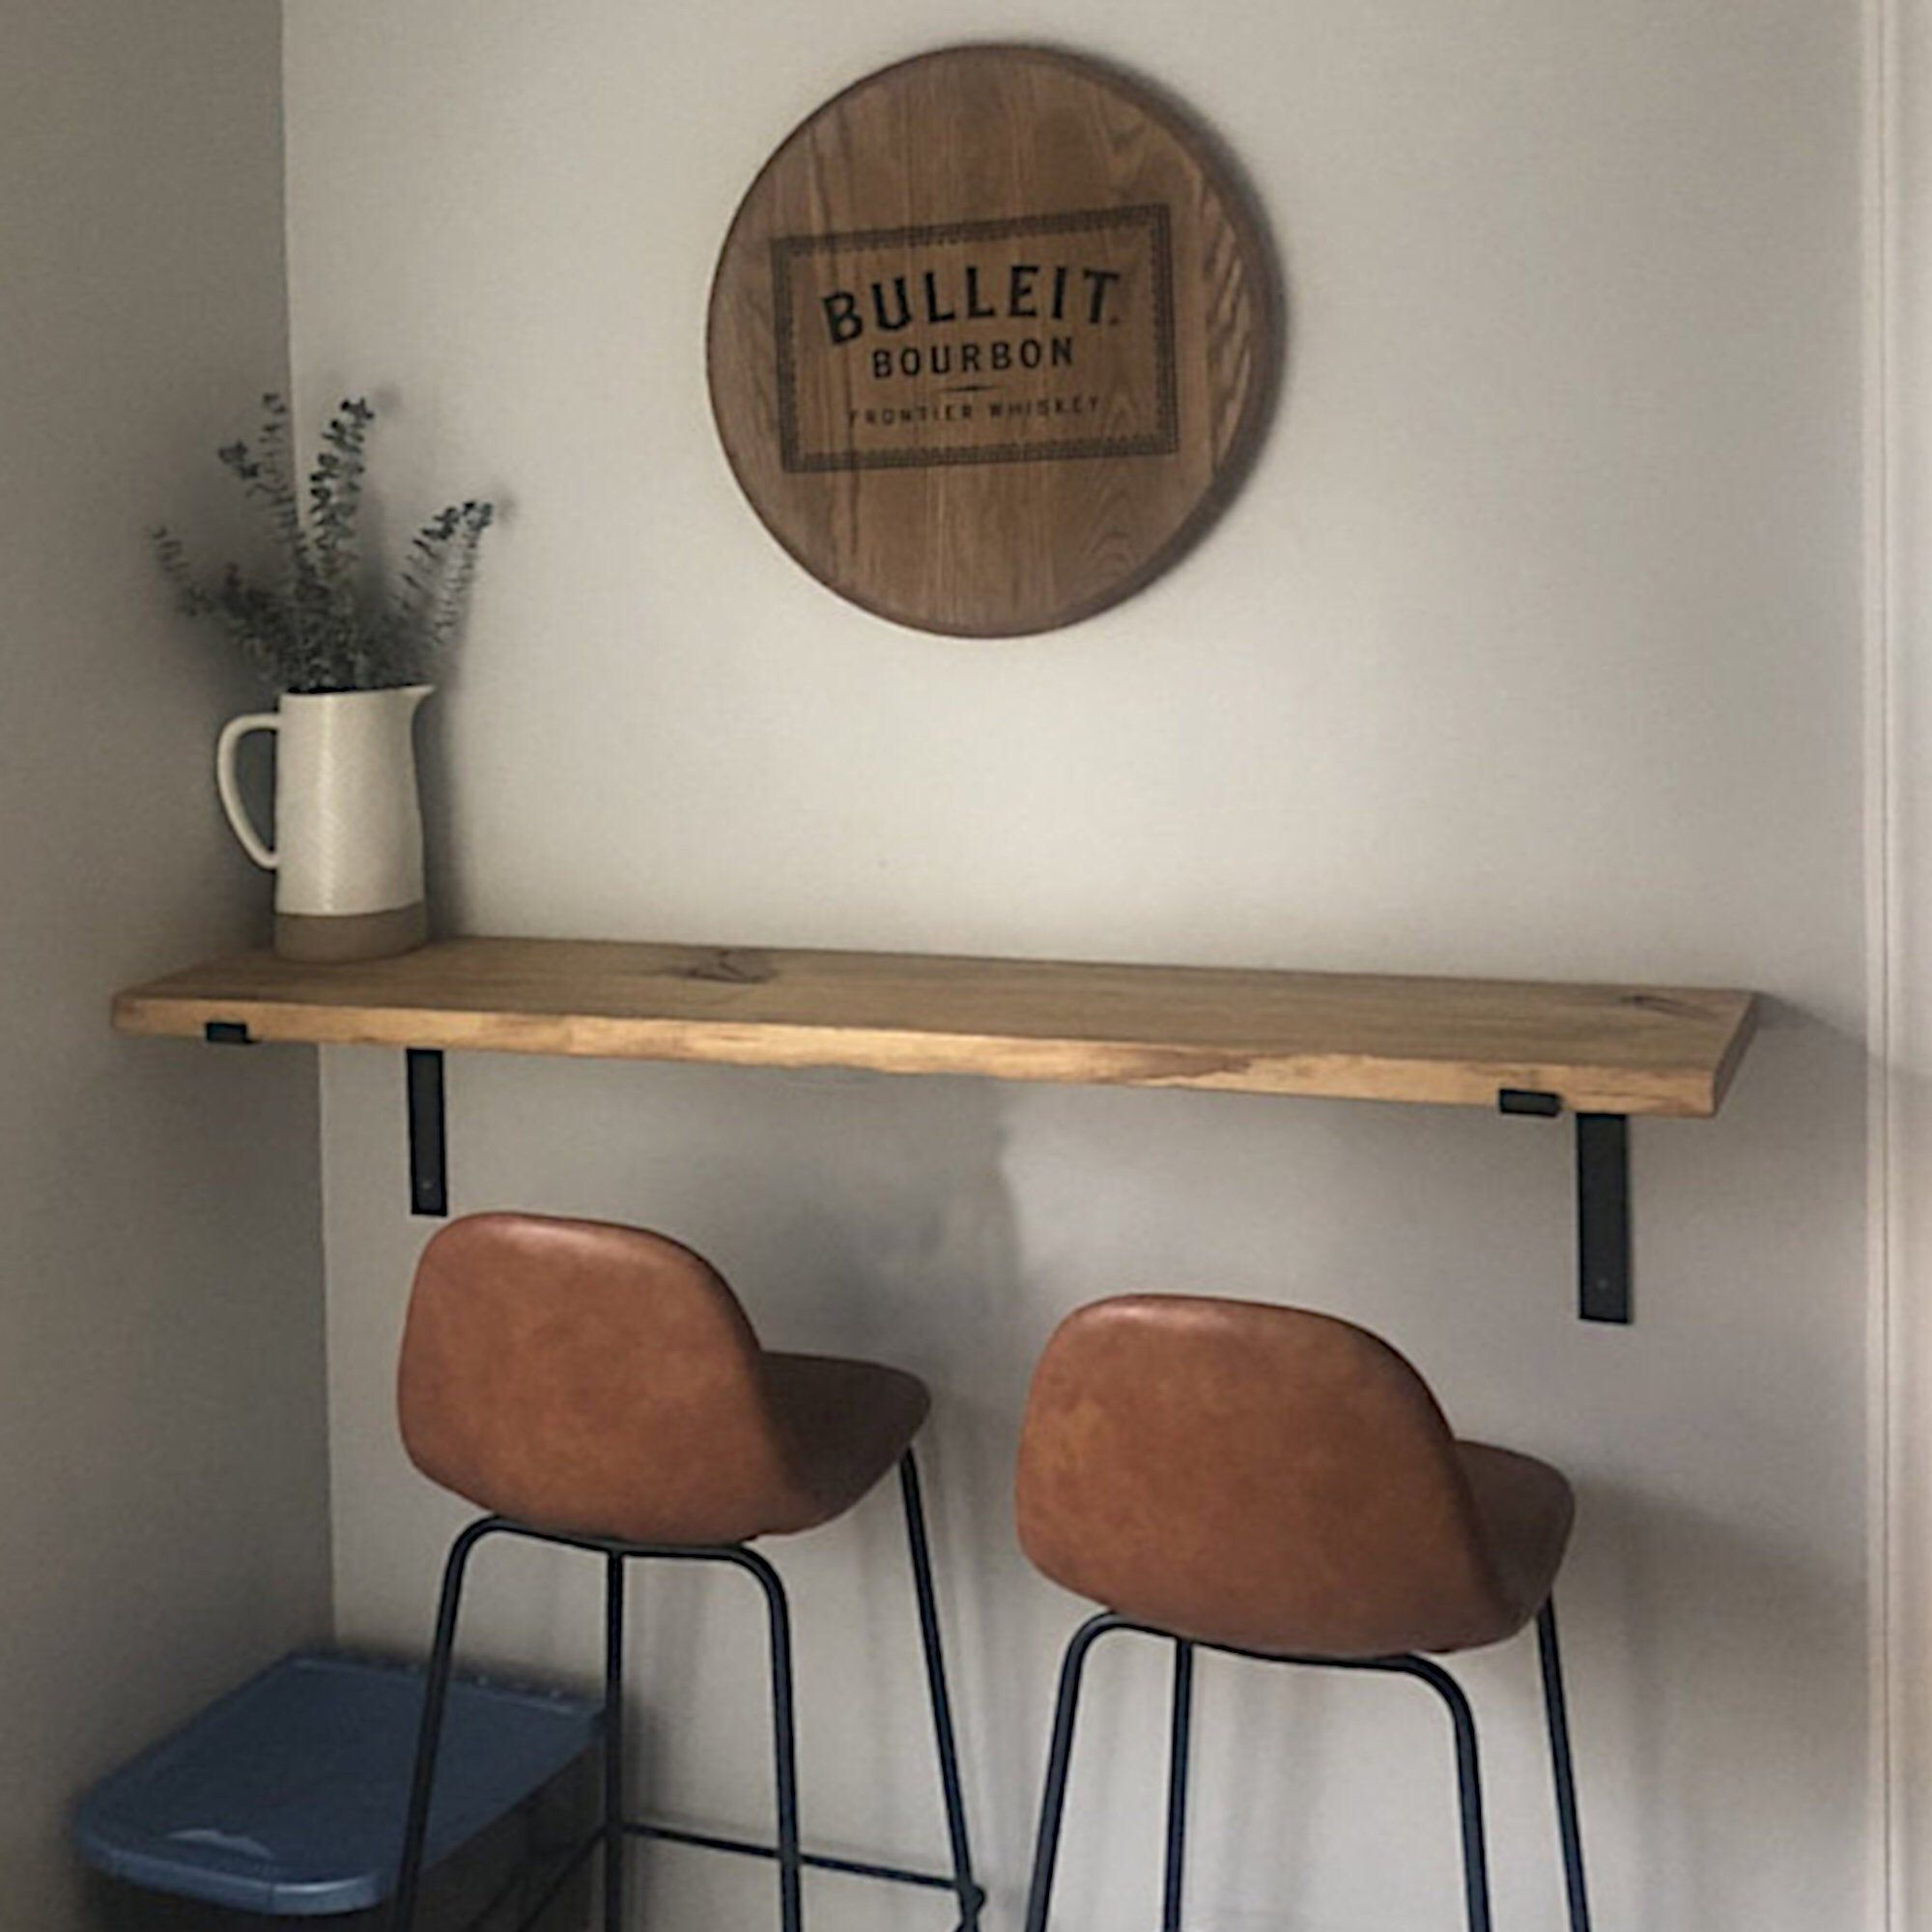 Modern Floating Loft Bar Table 11 25 L Bracket Golden Etsy In 2020 Nook Table Rustic Table Wall Mounted Table